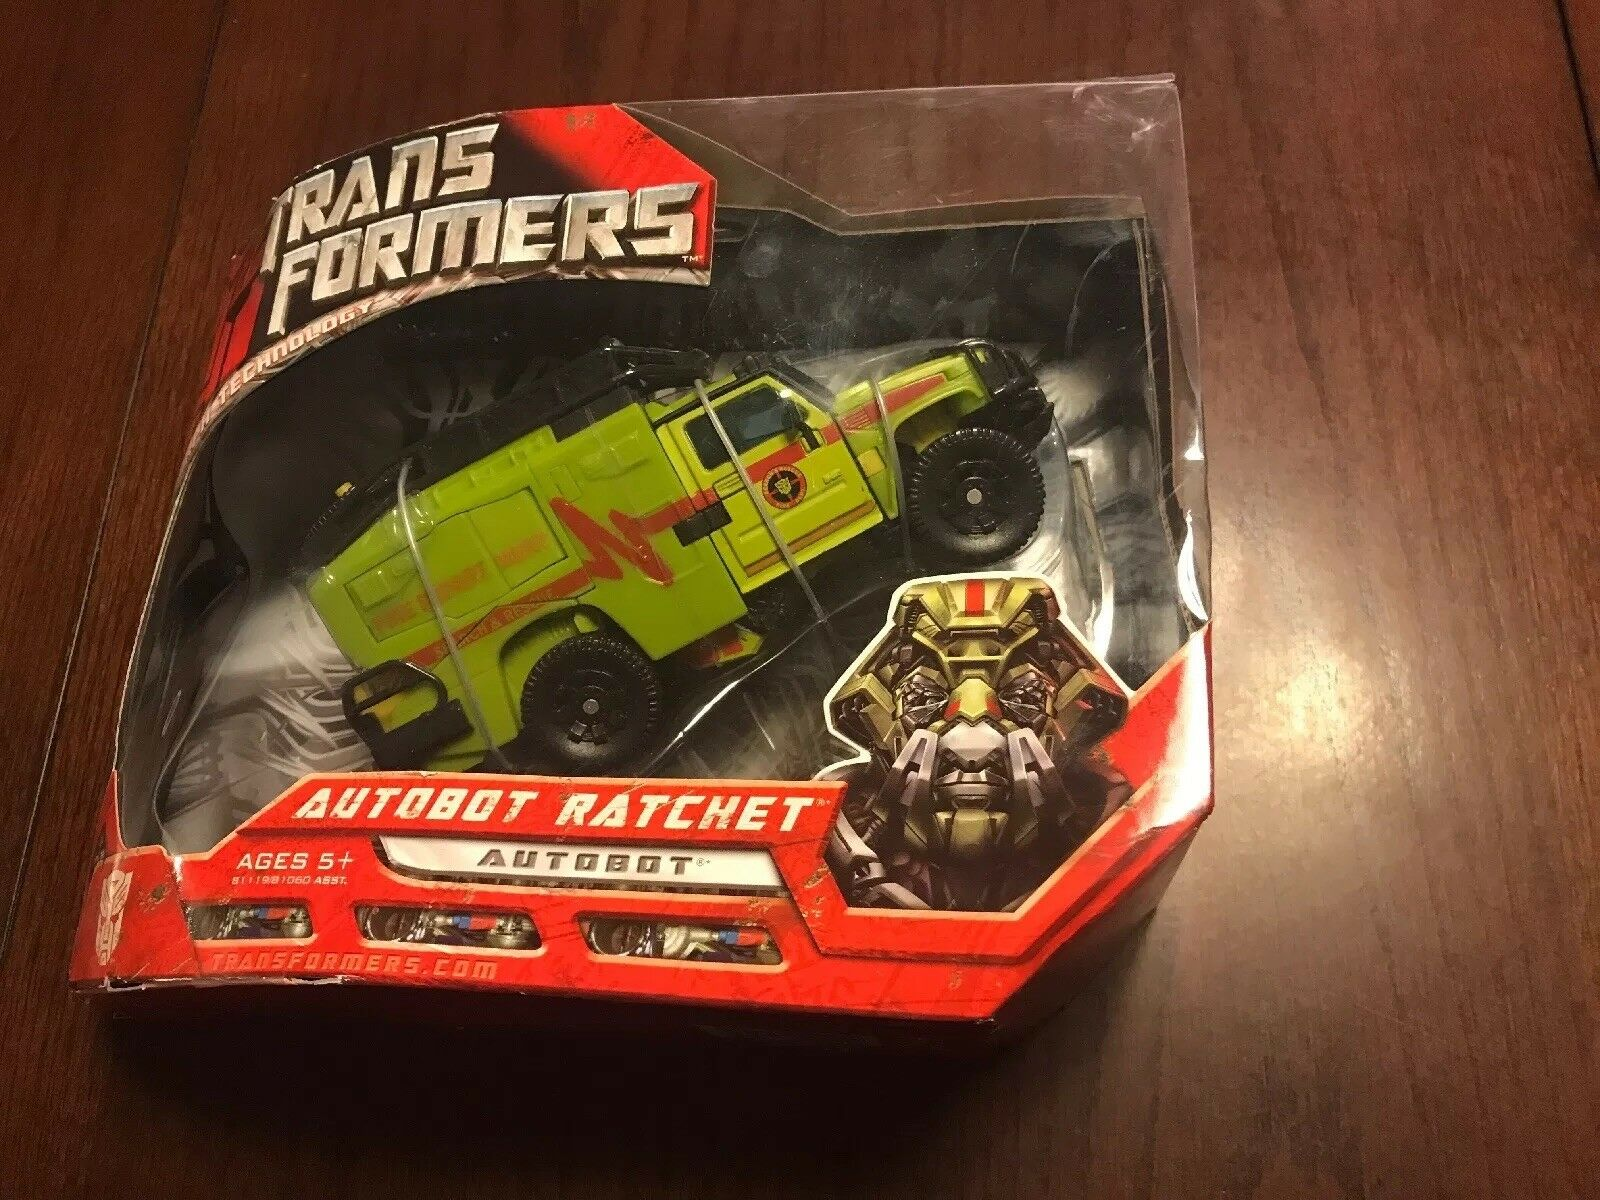 Transformers Voyager Class Autobot Ratchet Movie 2007 Hasbero MISB new